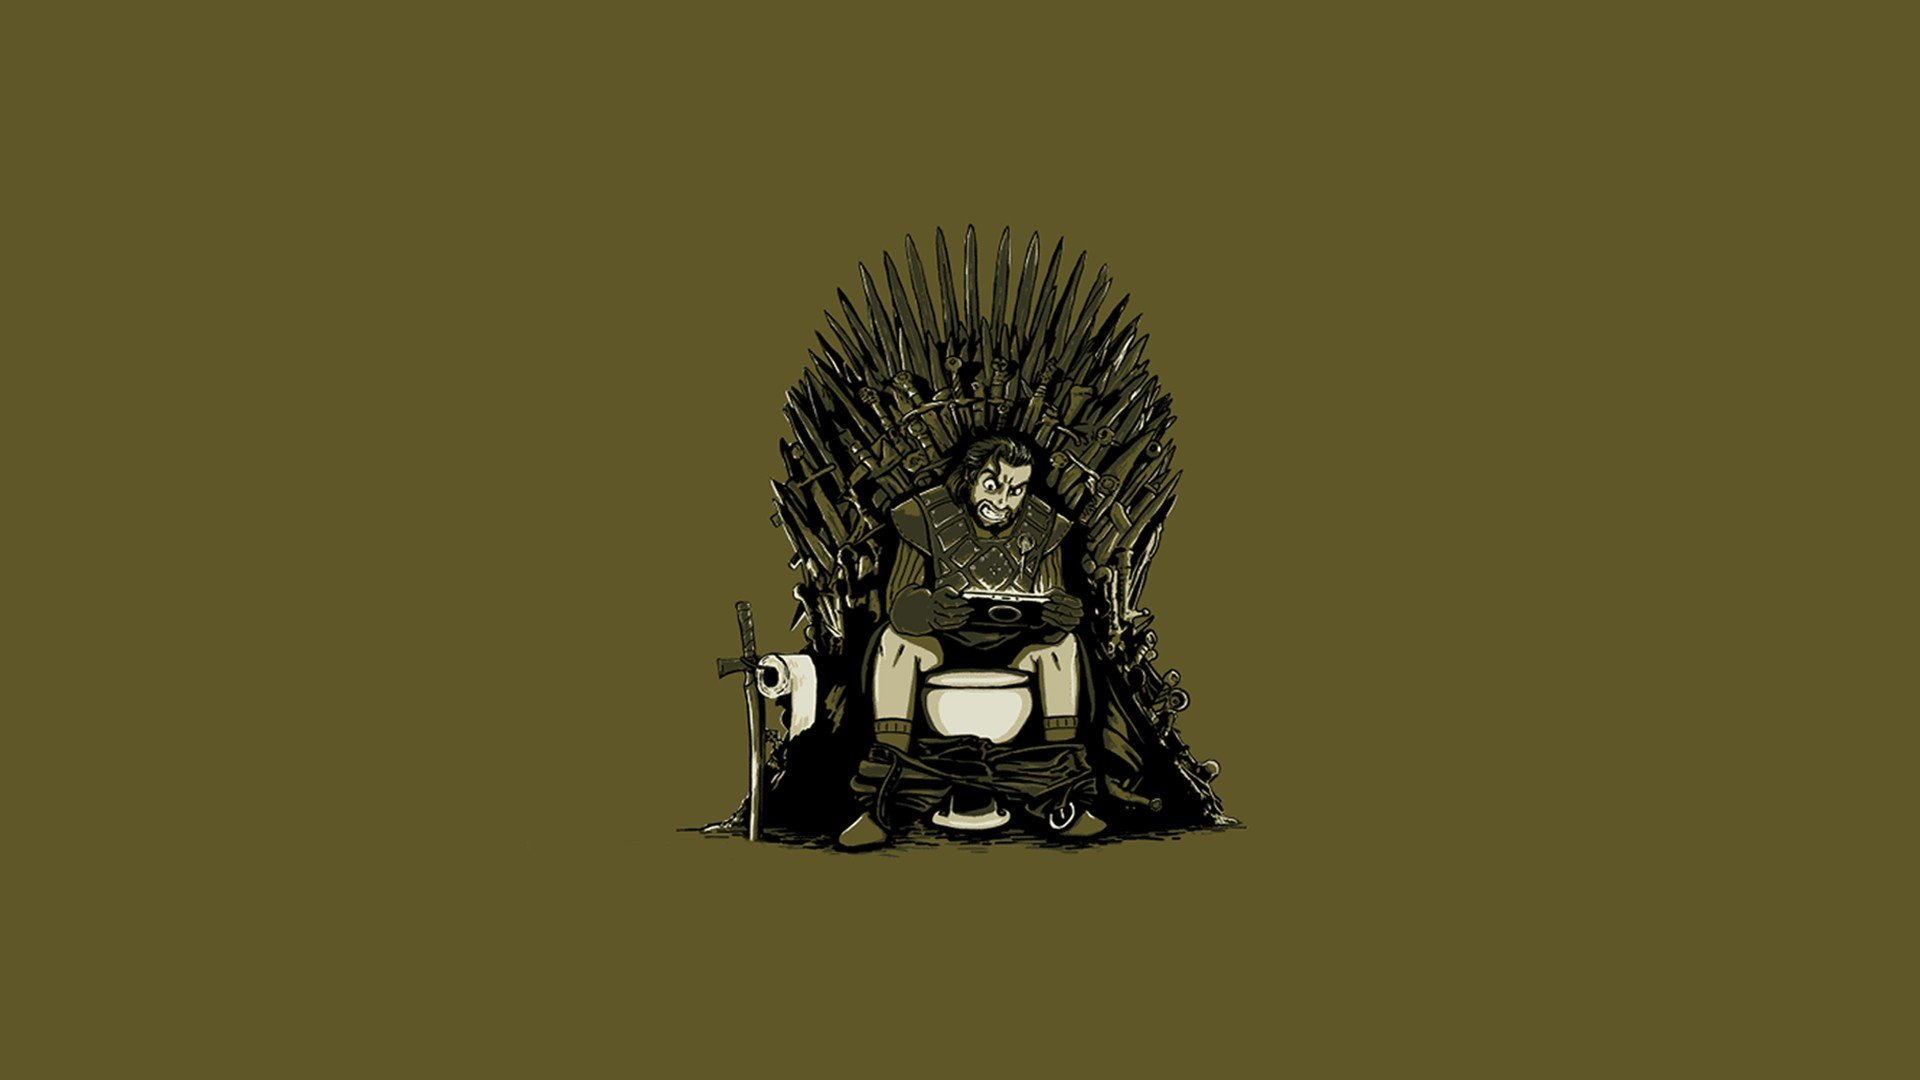 minimalistic funny artwork Game of Thrones simple background wallpaper 1920x1080